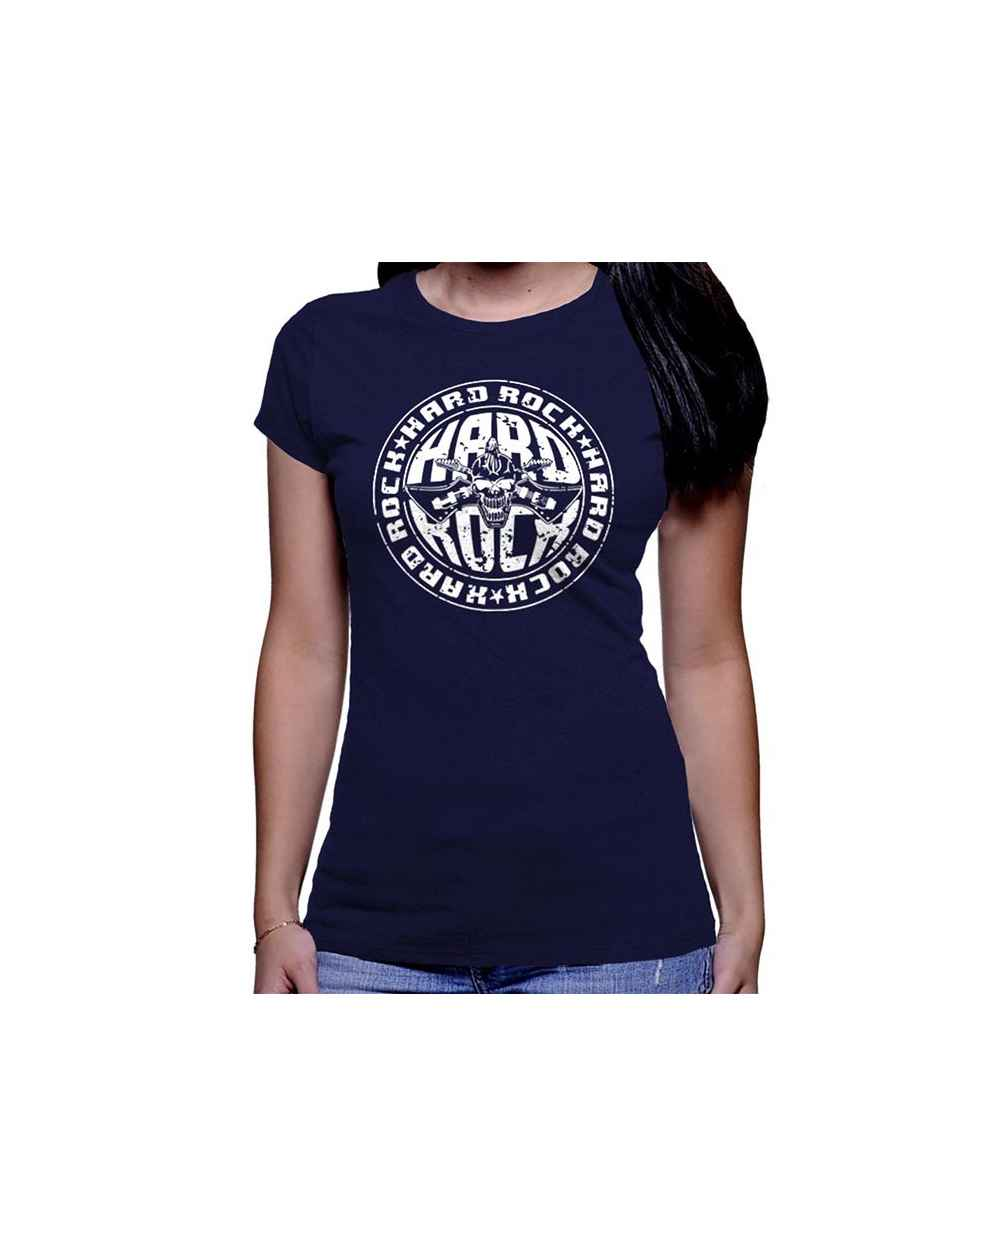 Camiseta Estampada Dama Hard Rock